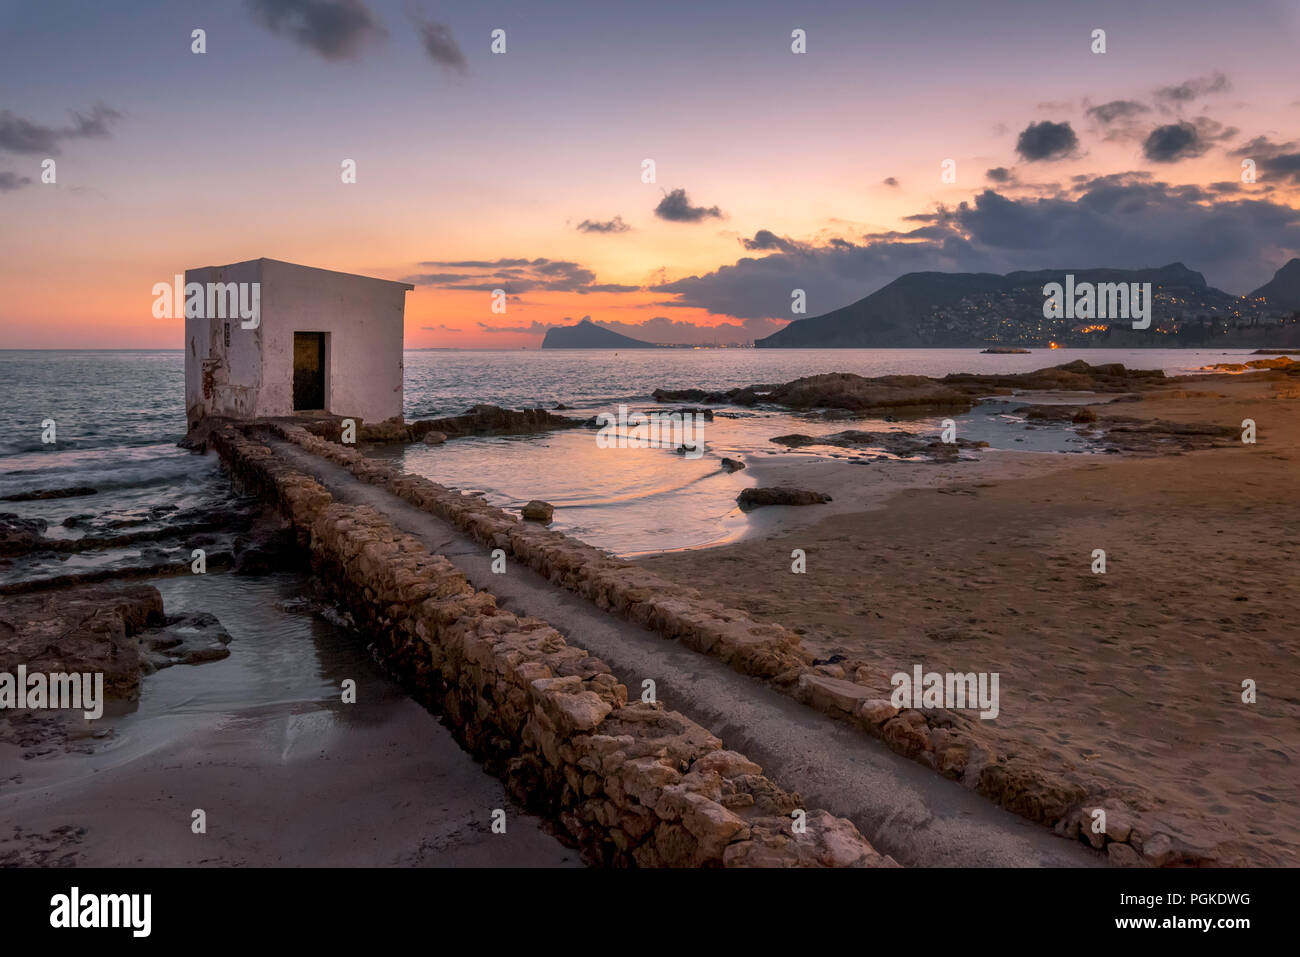 Calpe beach small house at sunset (Alicante - Spain). - Stock Image